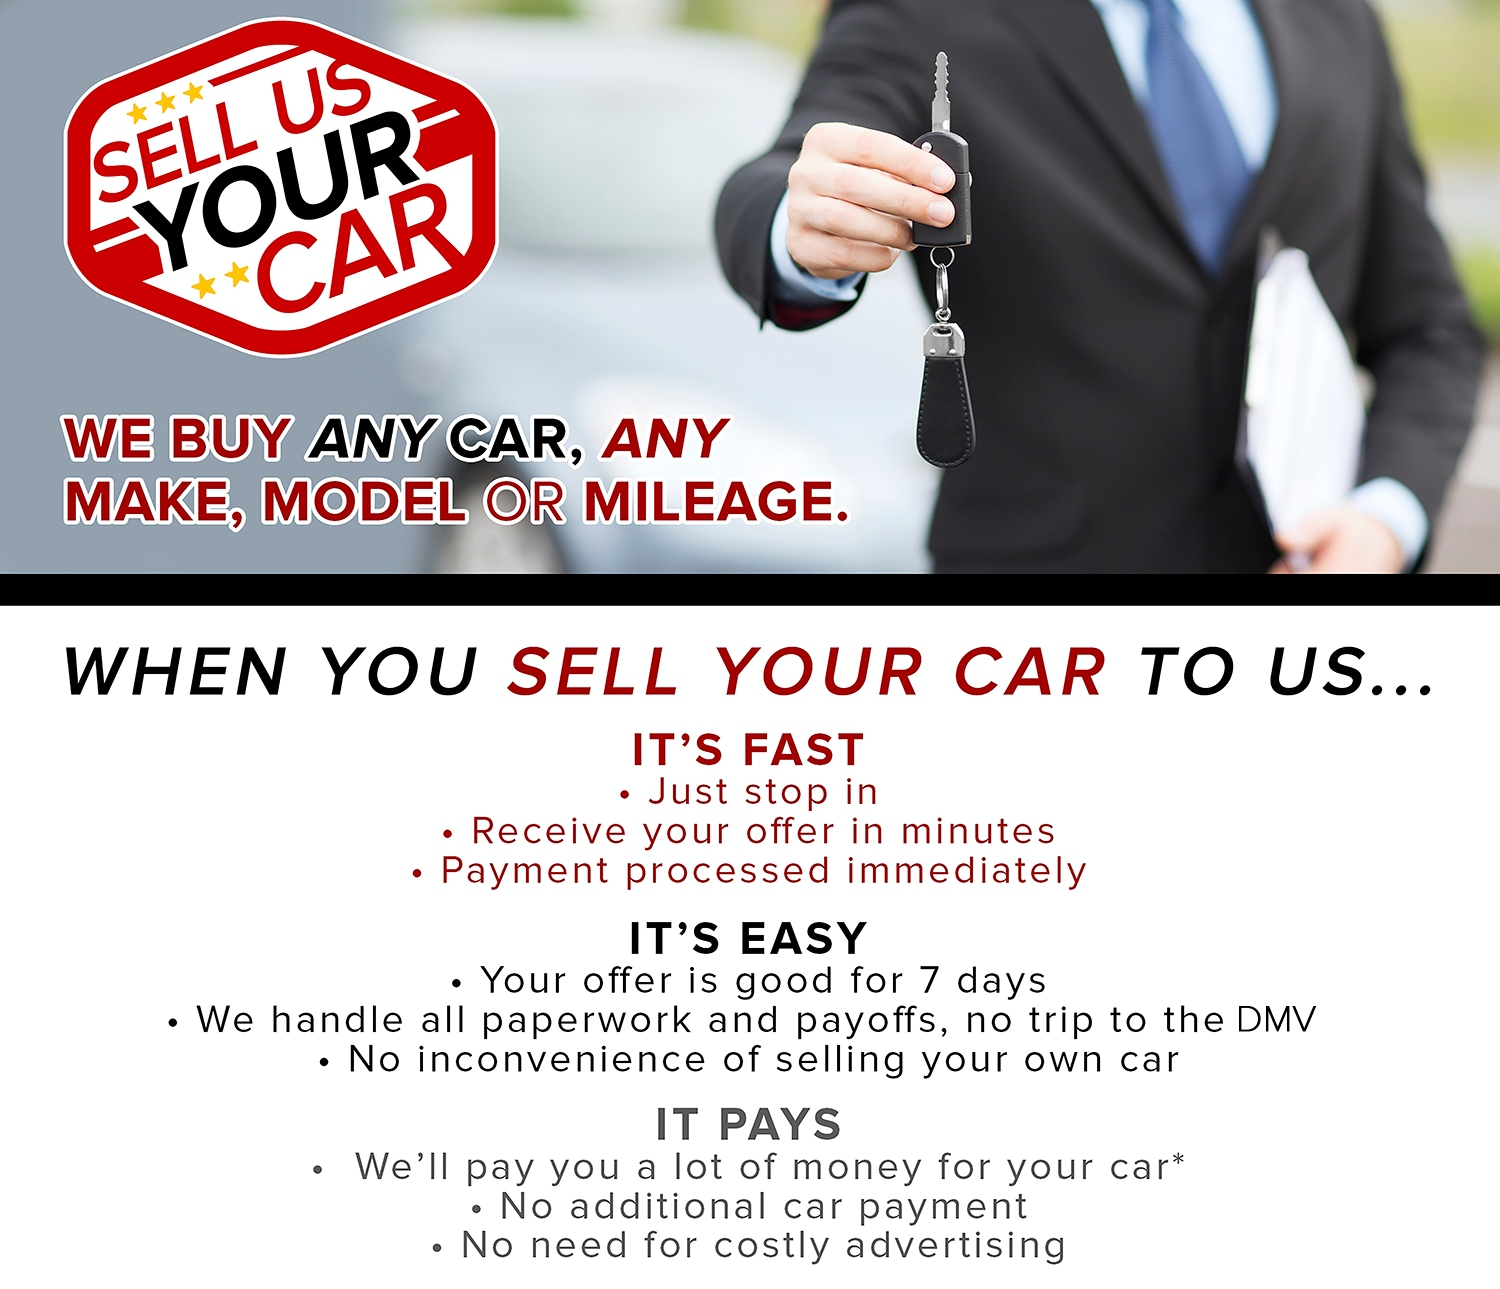 a46c5a126 Sell Us Your Car | Deery of Ames Chrysler Dodge Jeep Ram Iowa